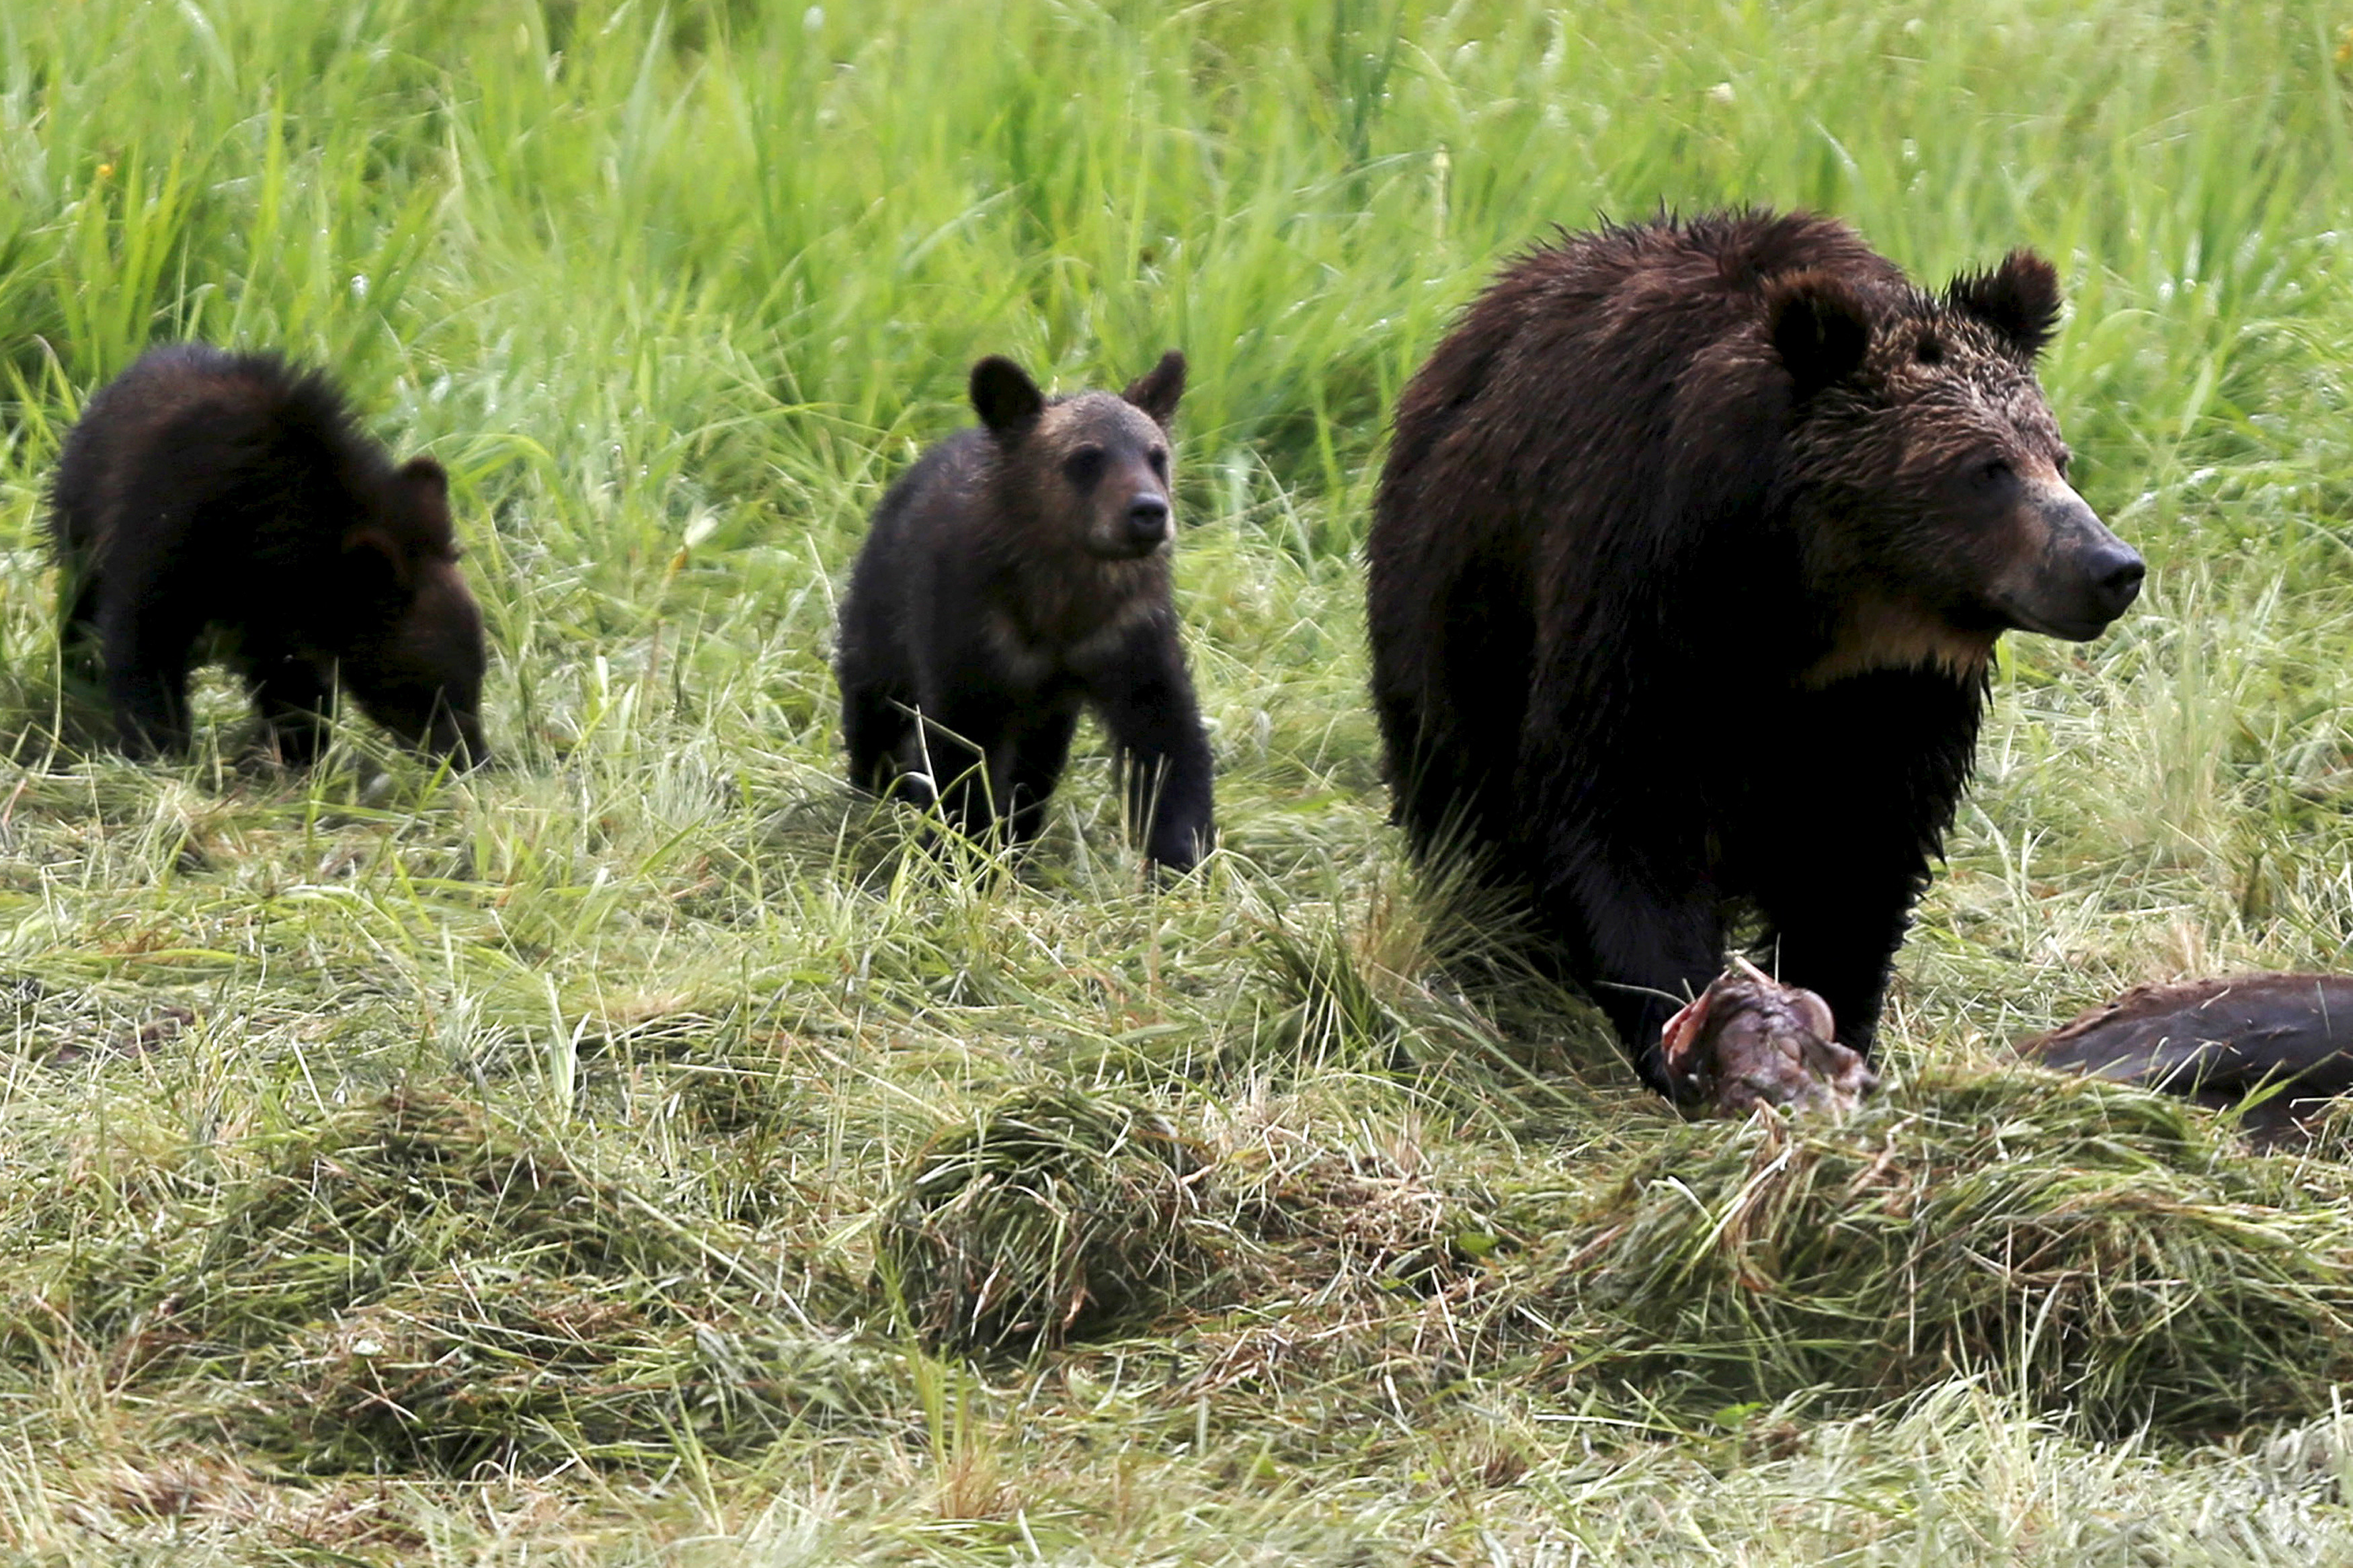 A grizzly bear and her two cubs approach the carcass of a bison in Yellowstone National Park in Wyoming, United States